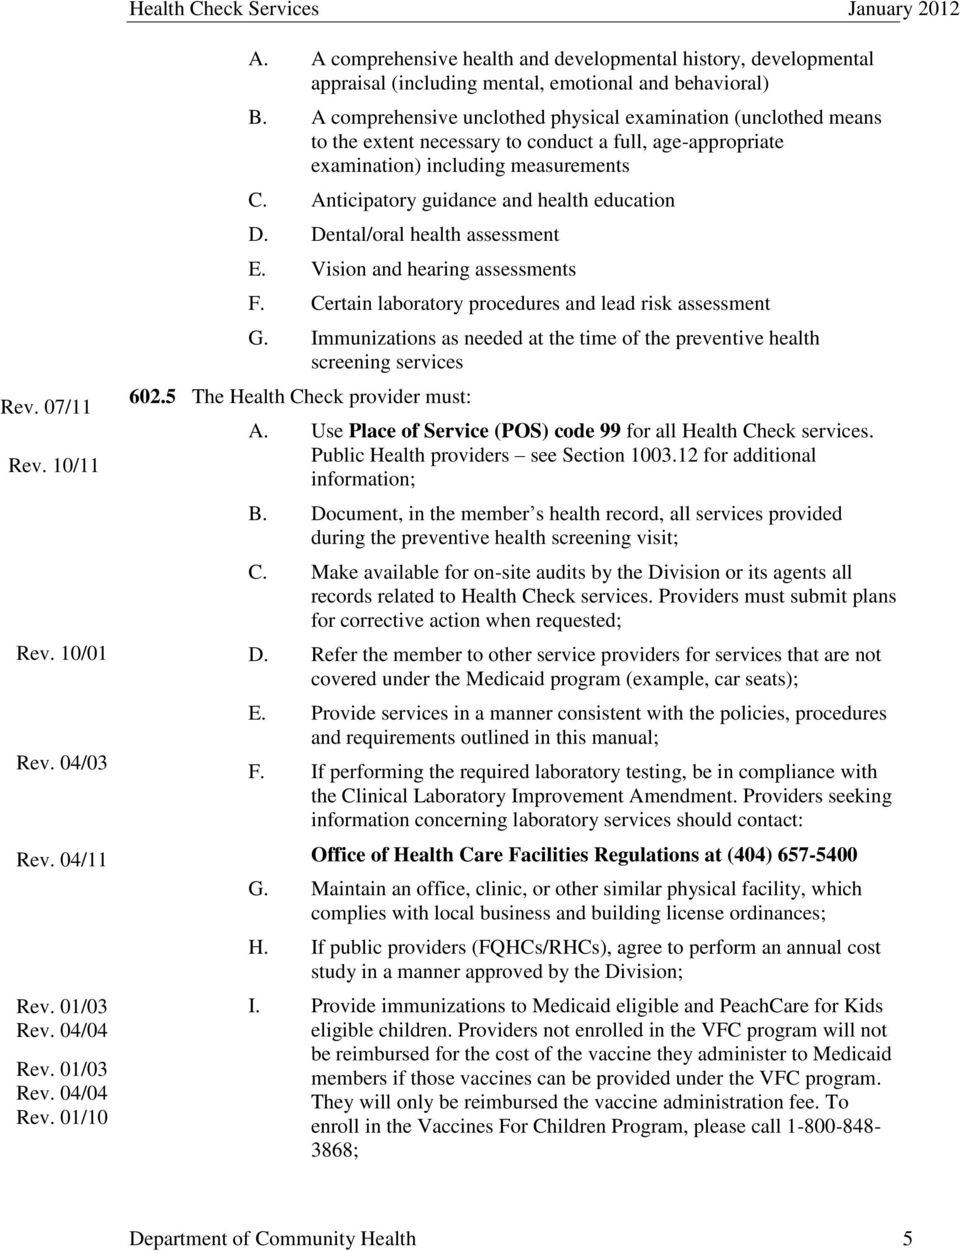 PART II POLICIES AND PROCEDURES FOR HEALTH CHECK SERVICES